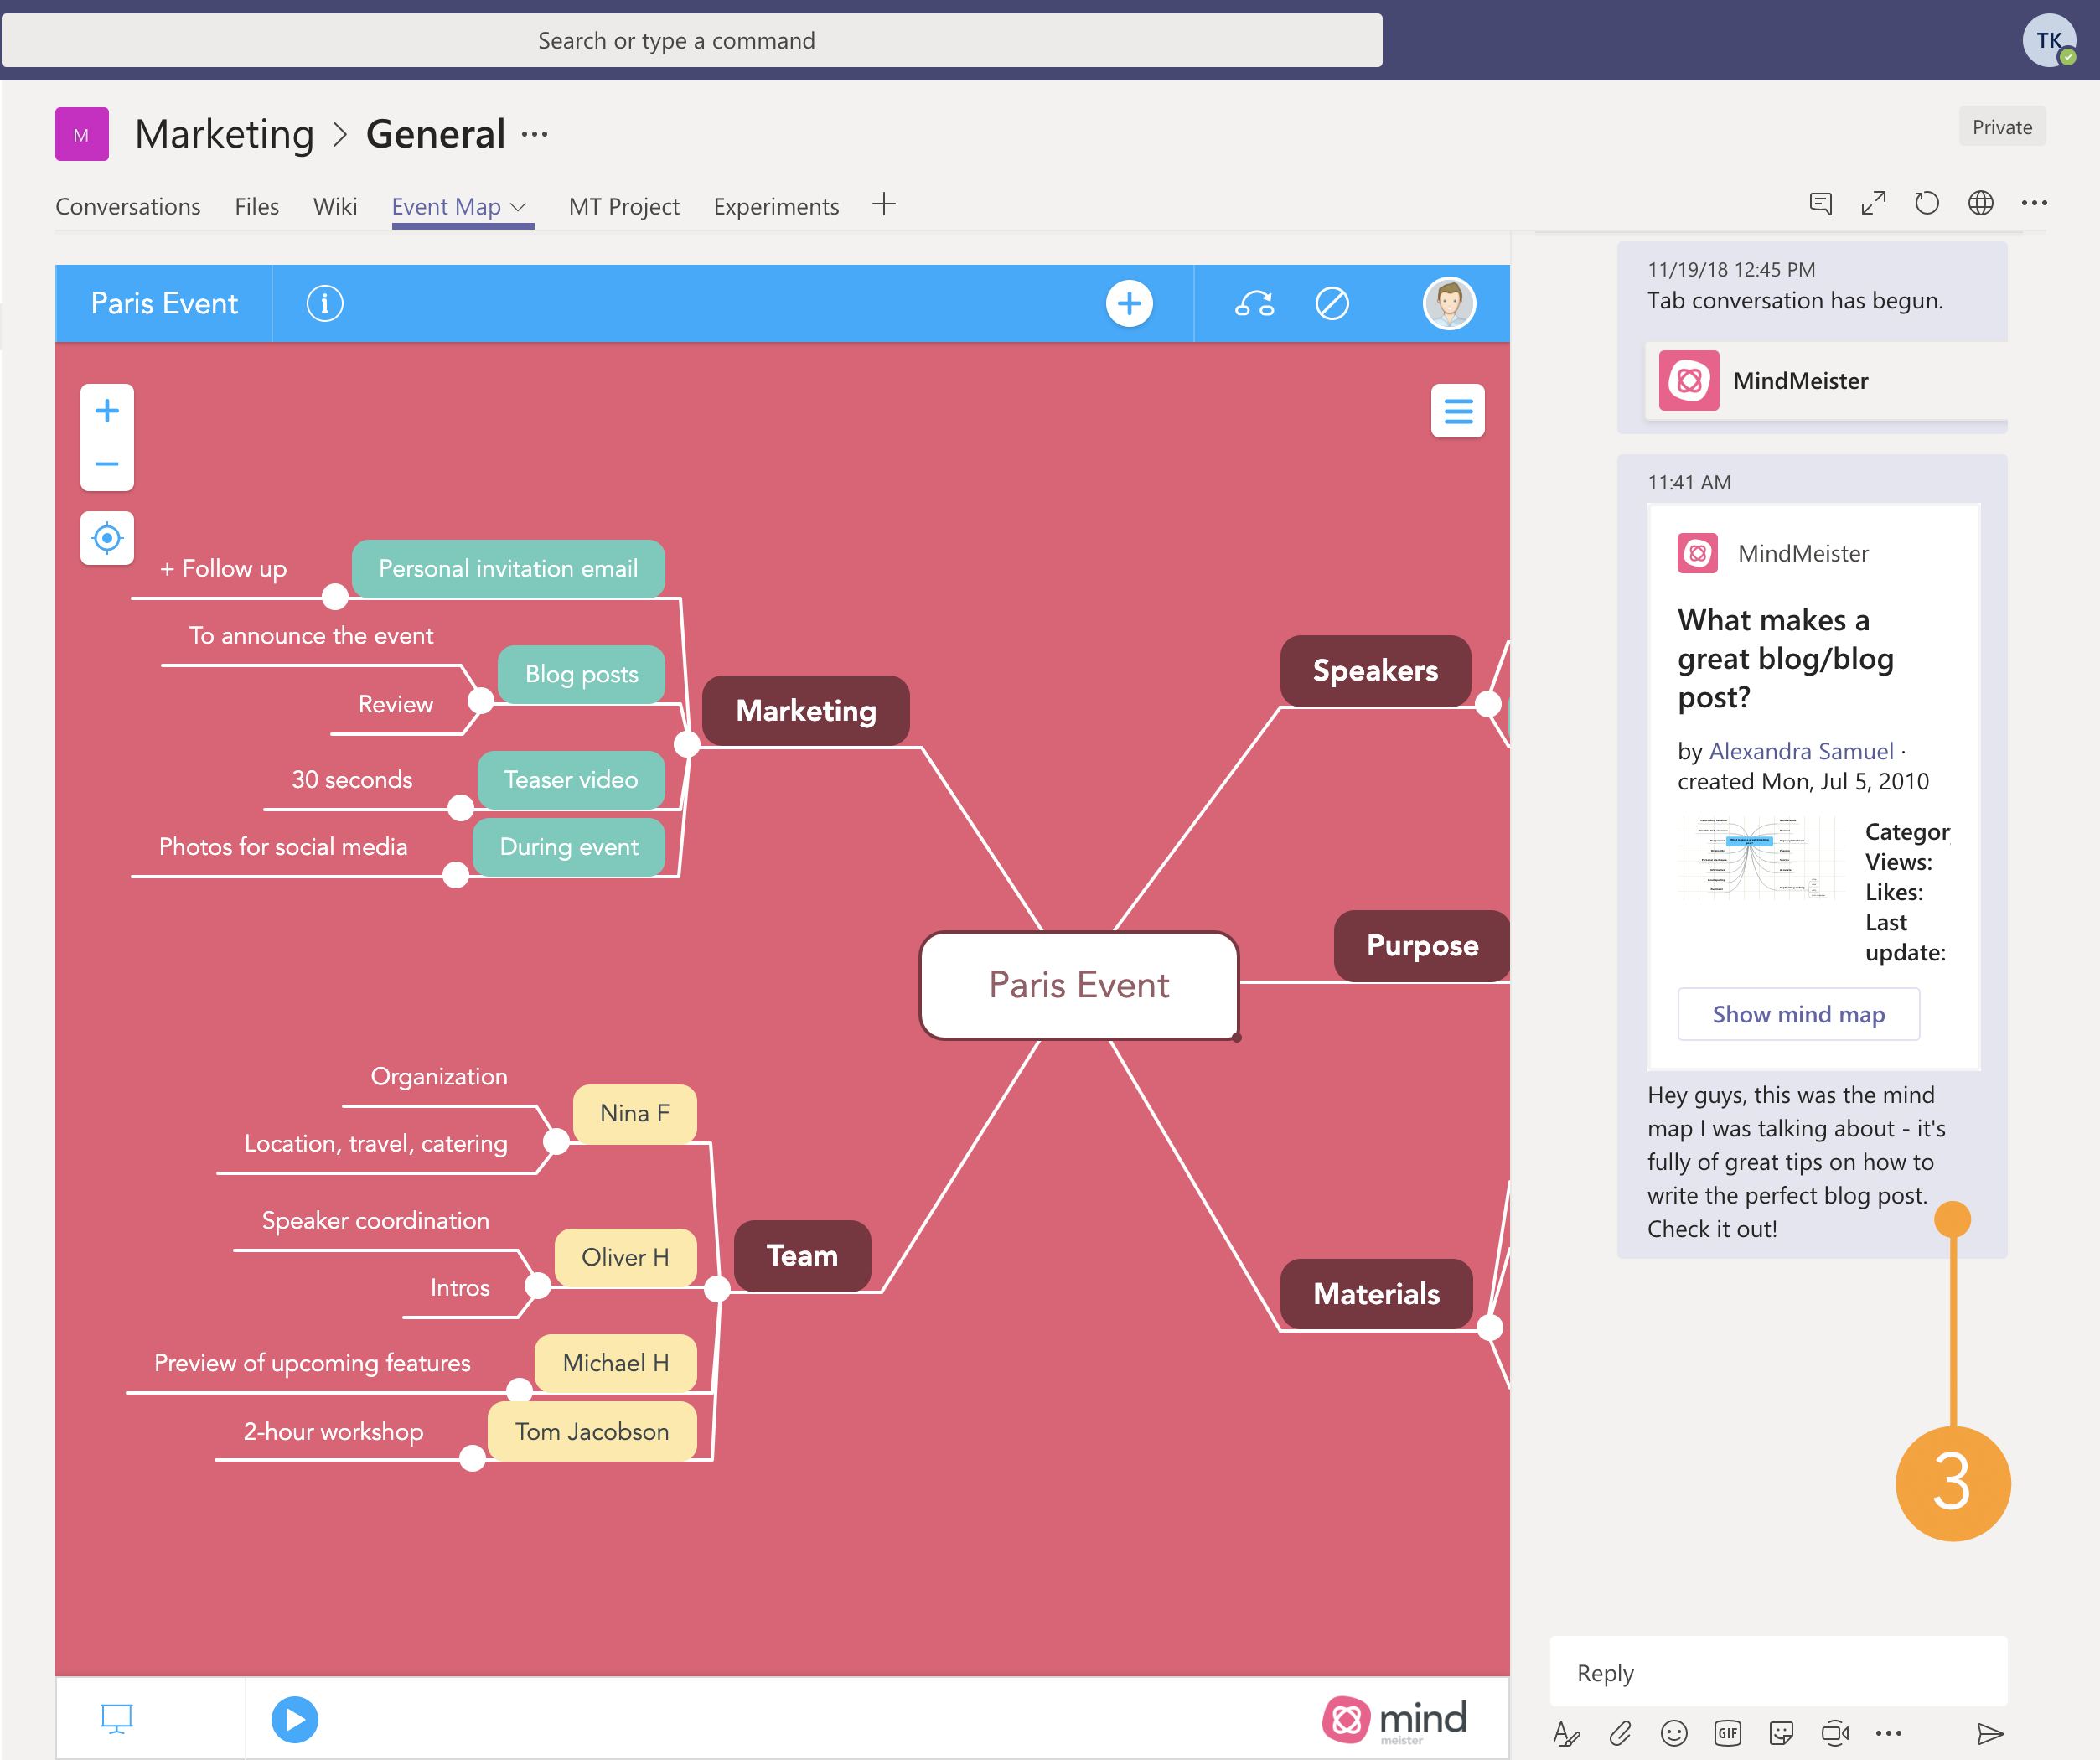 Sharing a public mind map